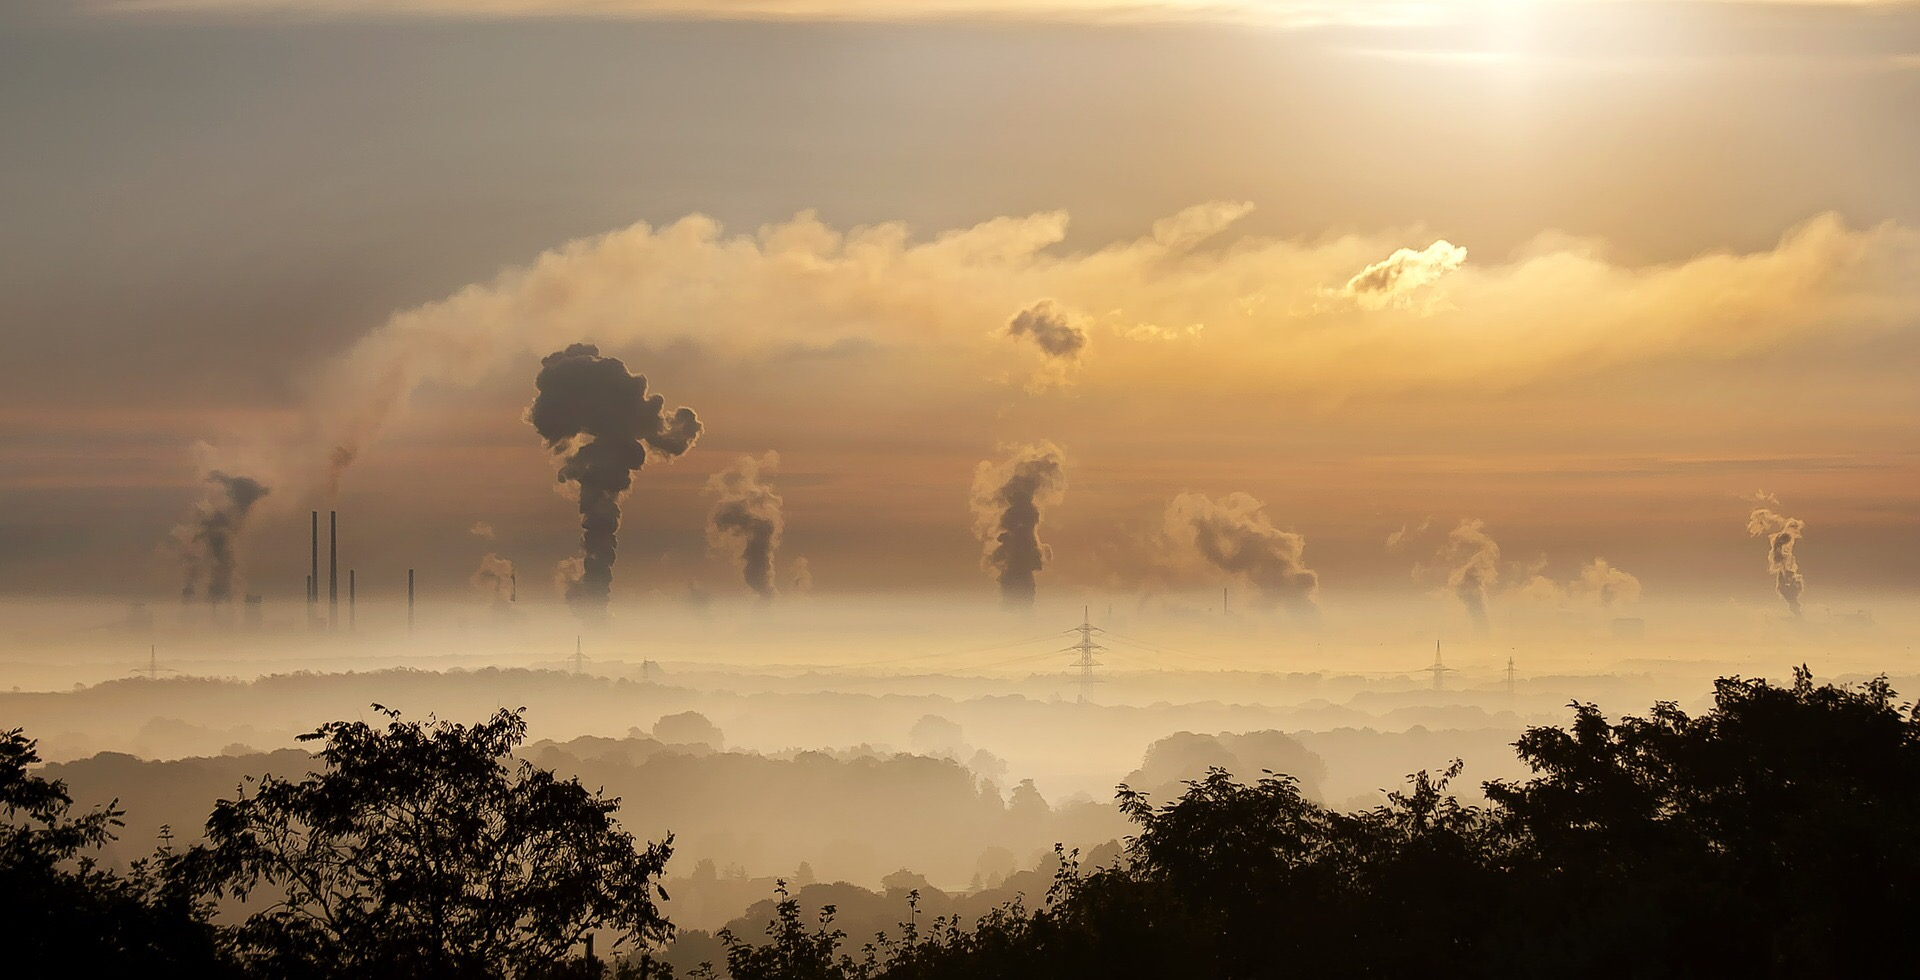 Global carbon intensity decreased 50% since 1990